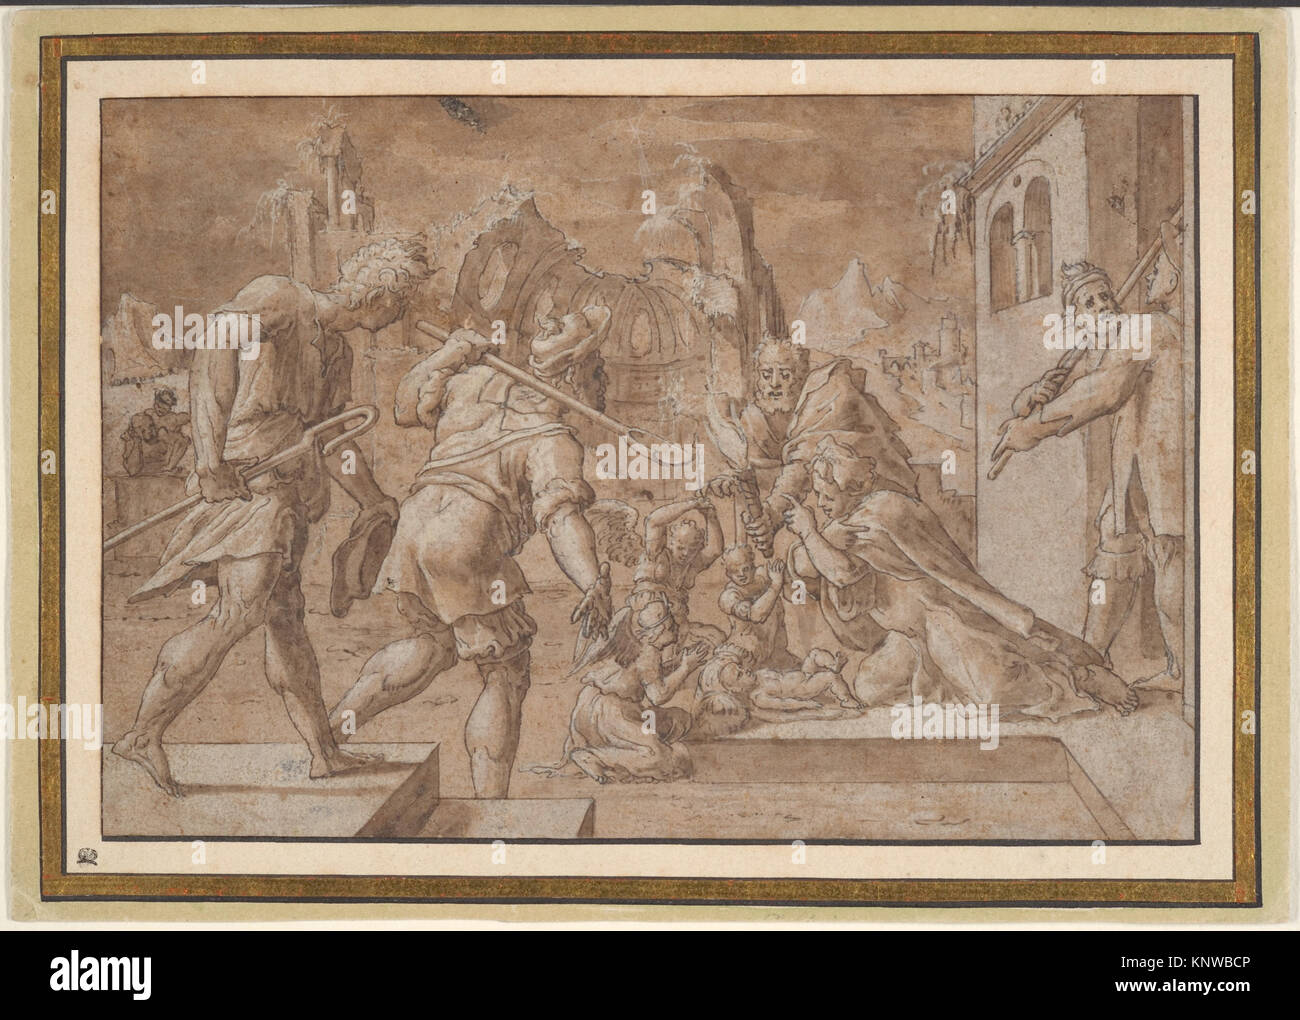 Master Of The Adoration Of The Shepherds Imágenes De Stock & Master ...